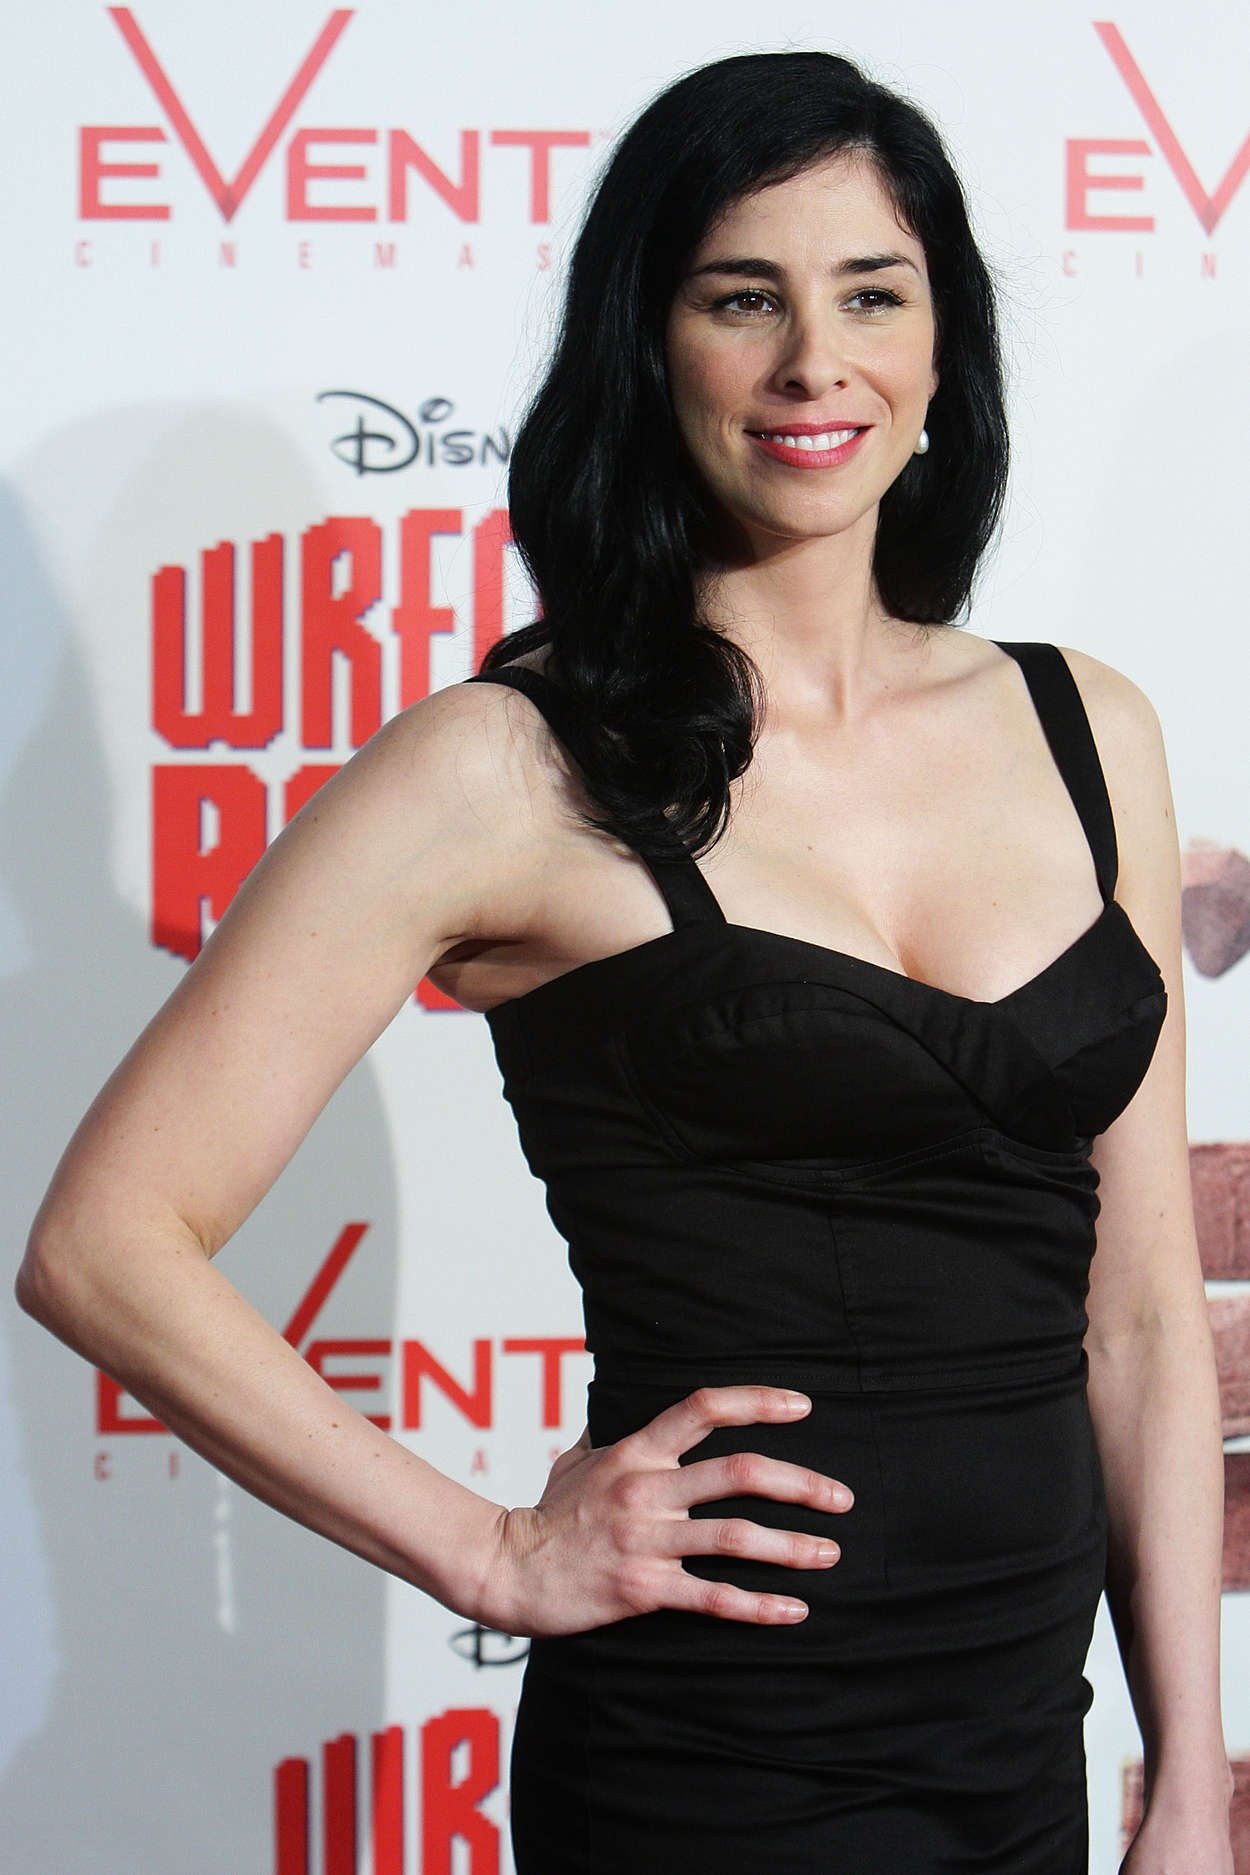 Sarah Silverman Wreck It Ralph Premiere in Sydney